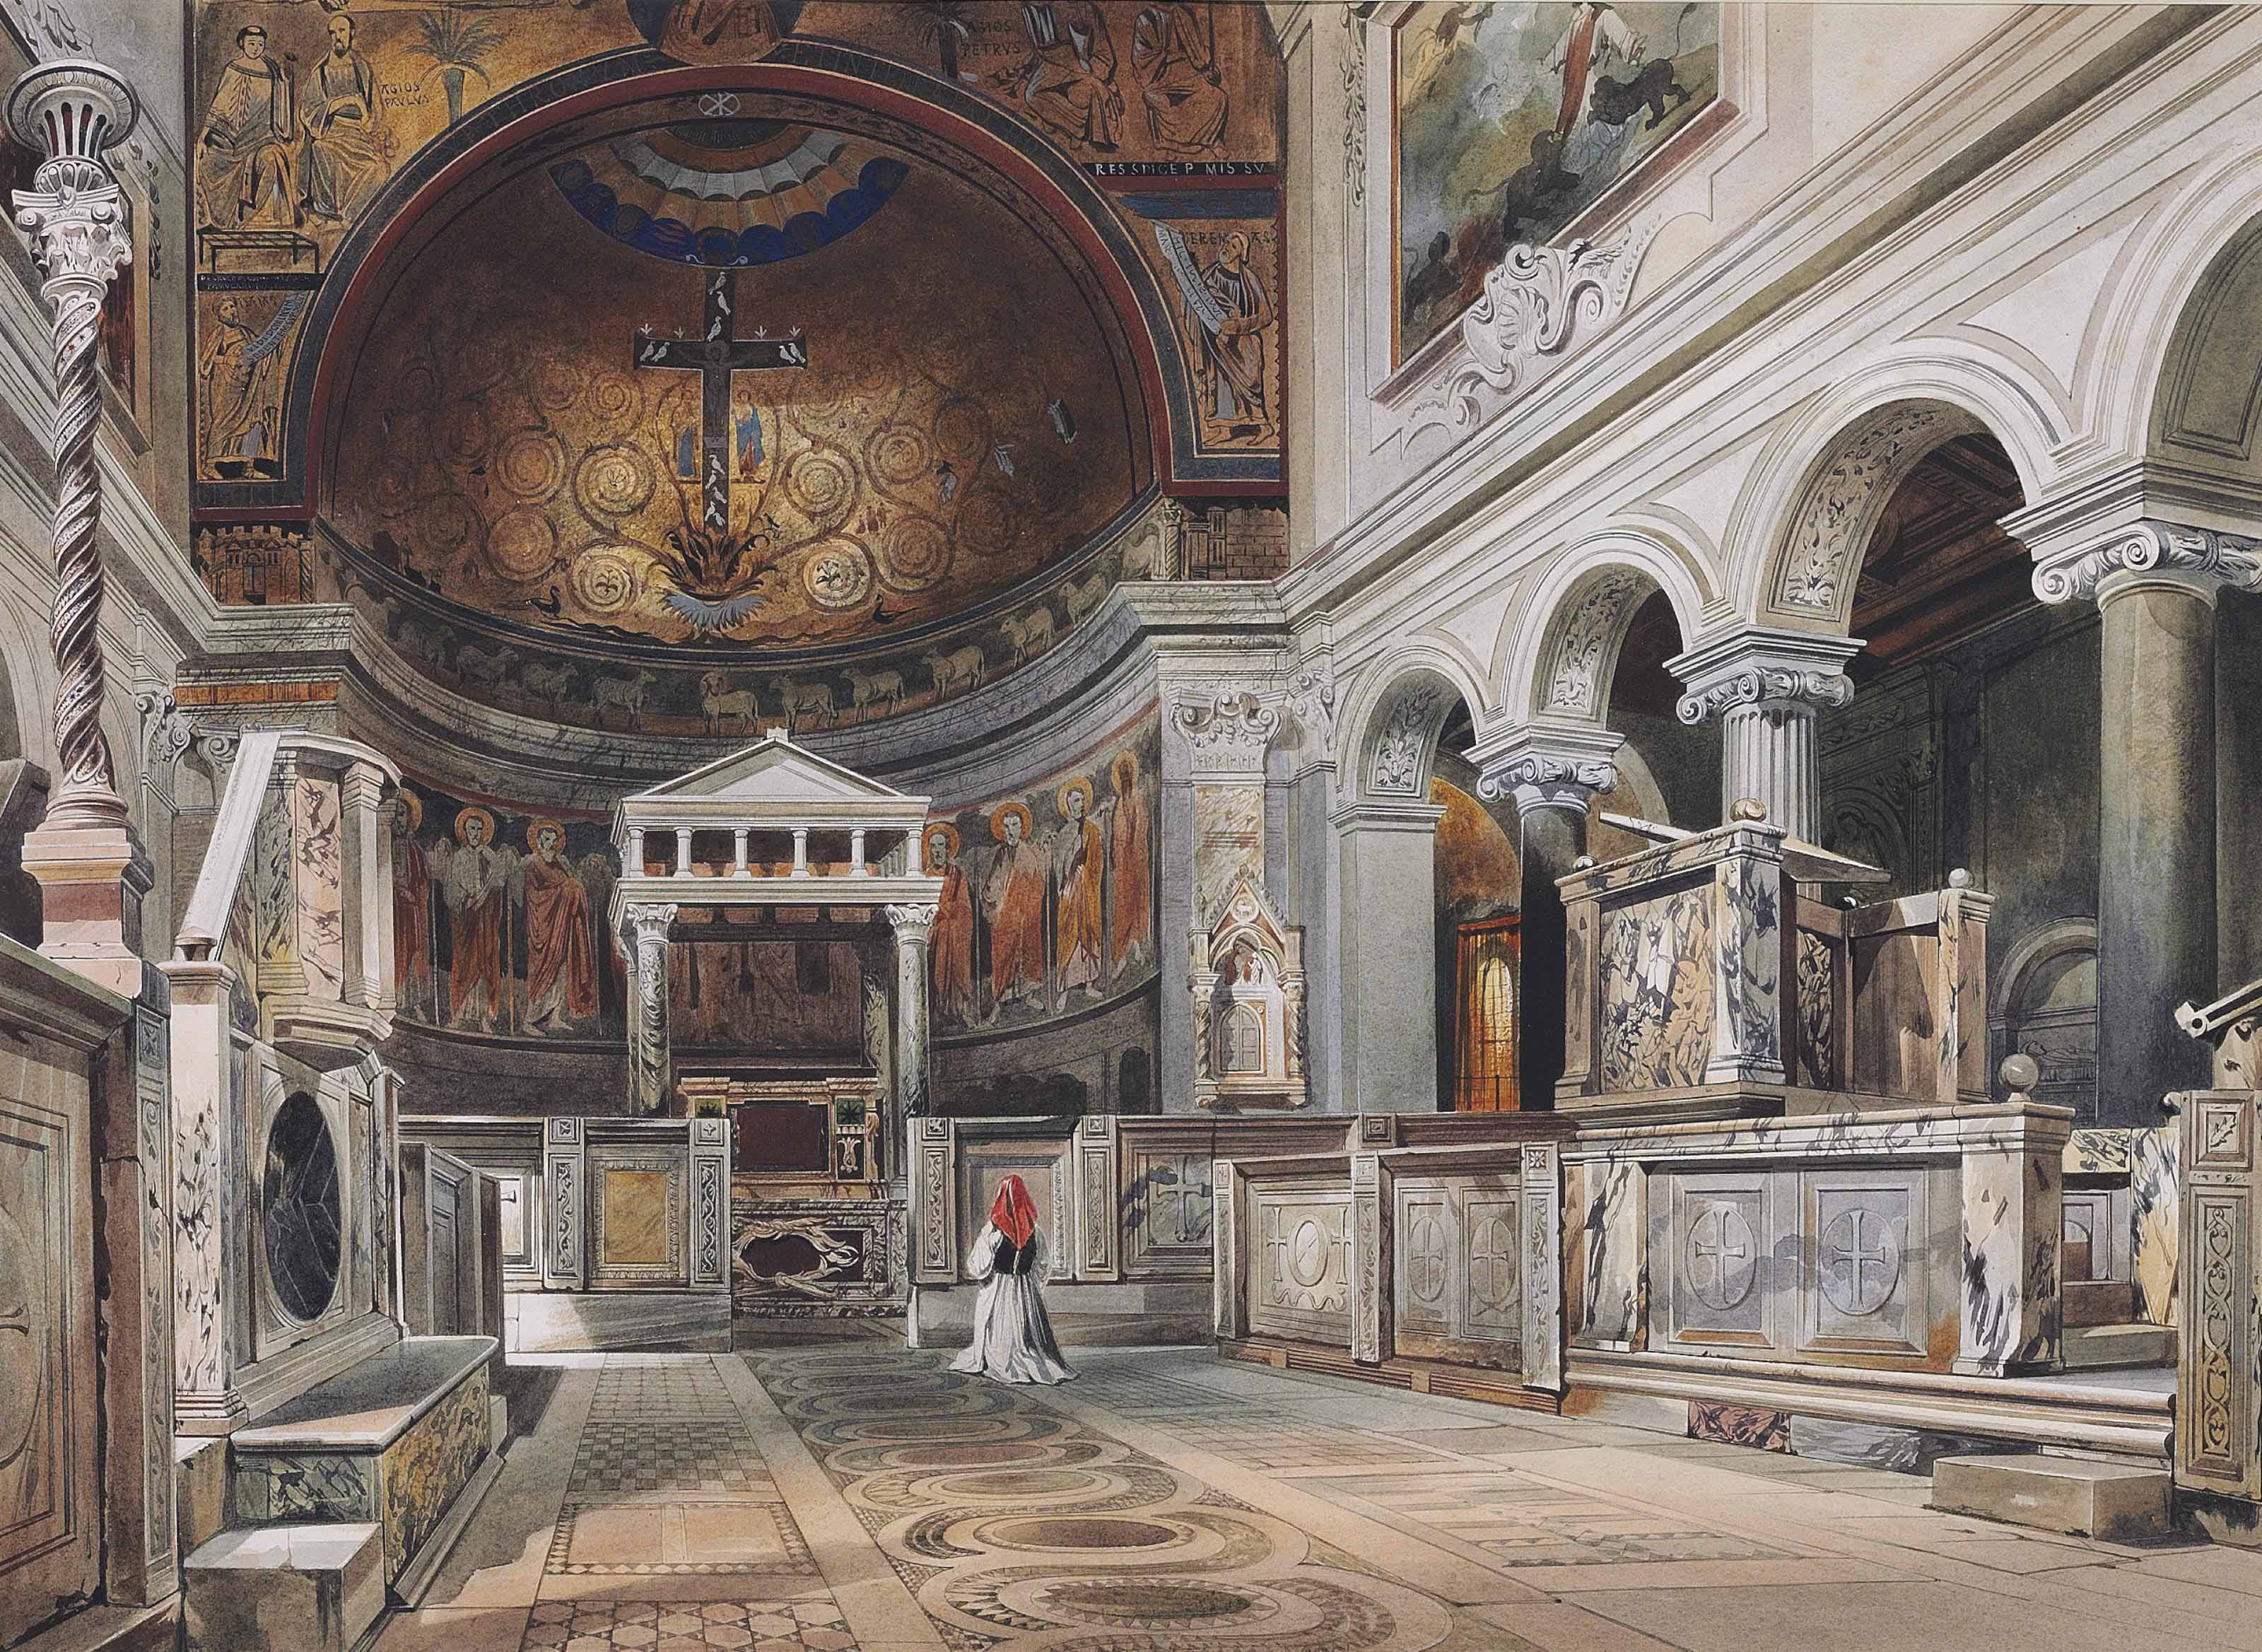 The interior of the Church of San Clemente, Rome